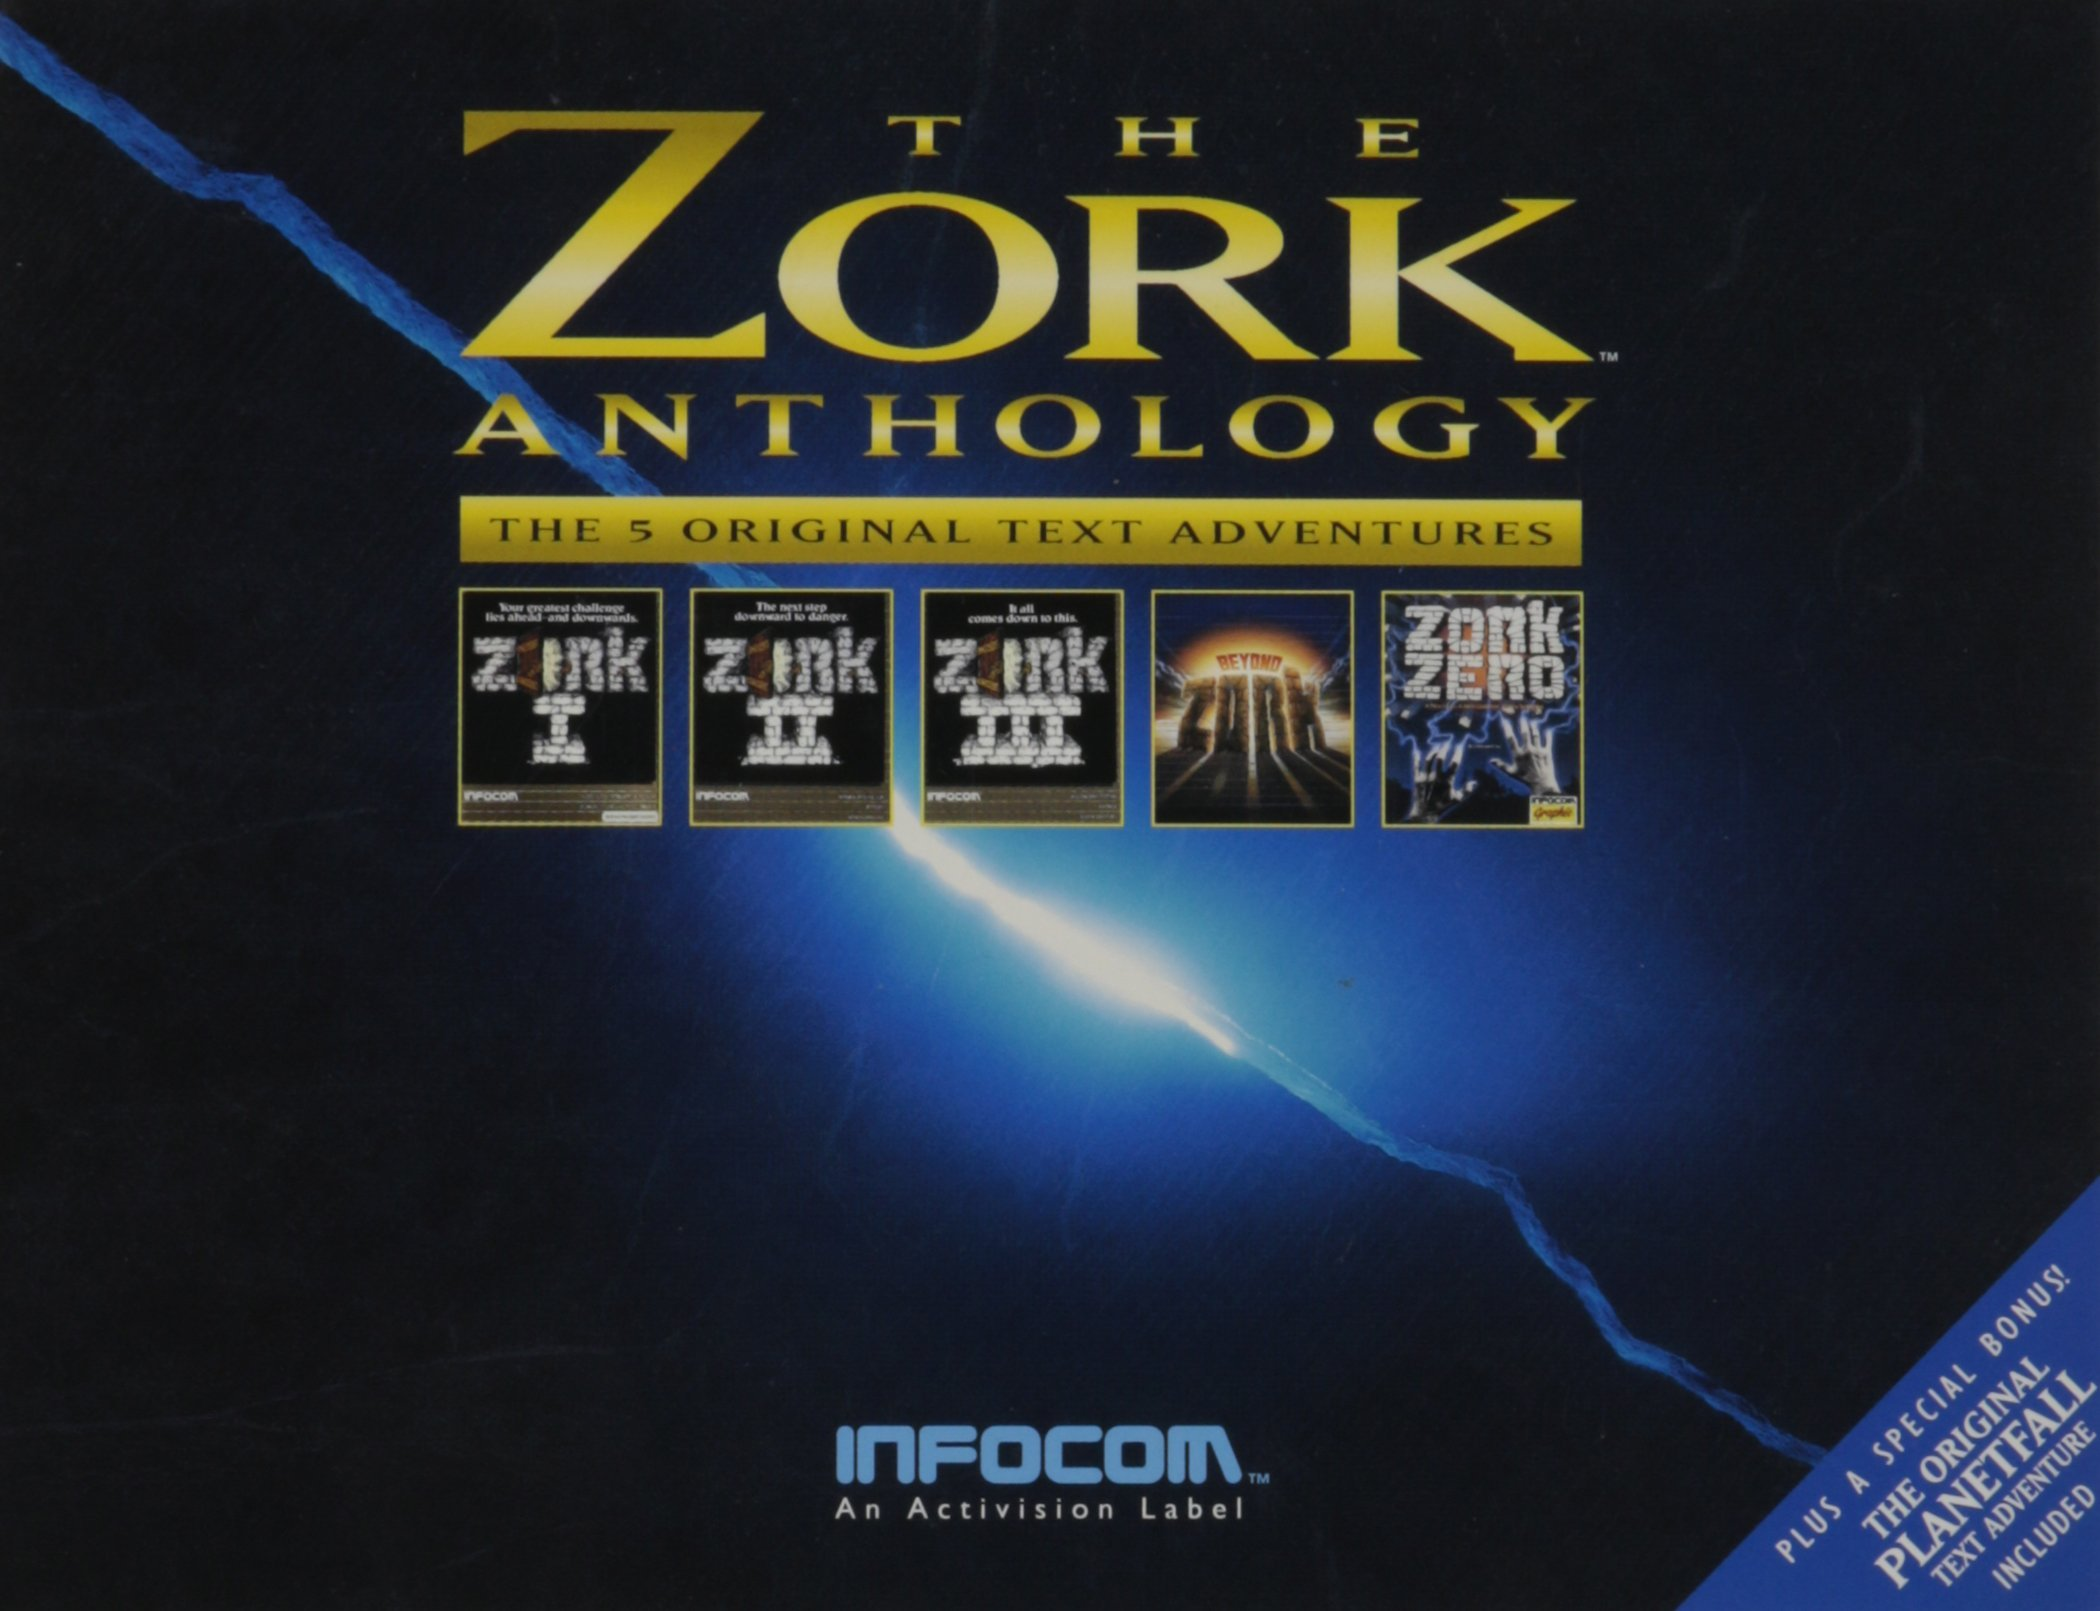 Zork Anthology: The 5 Original Text Adventures